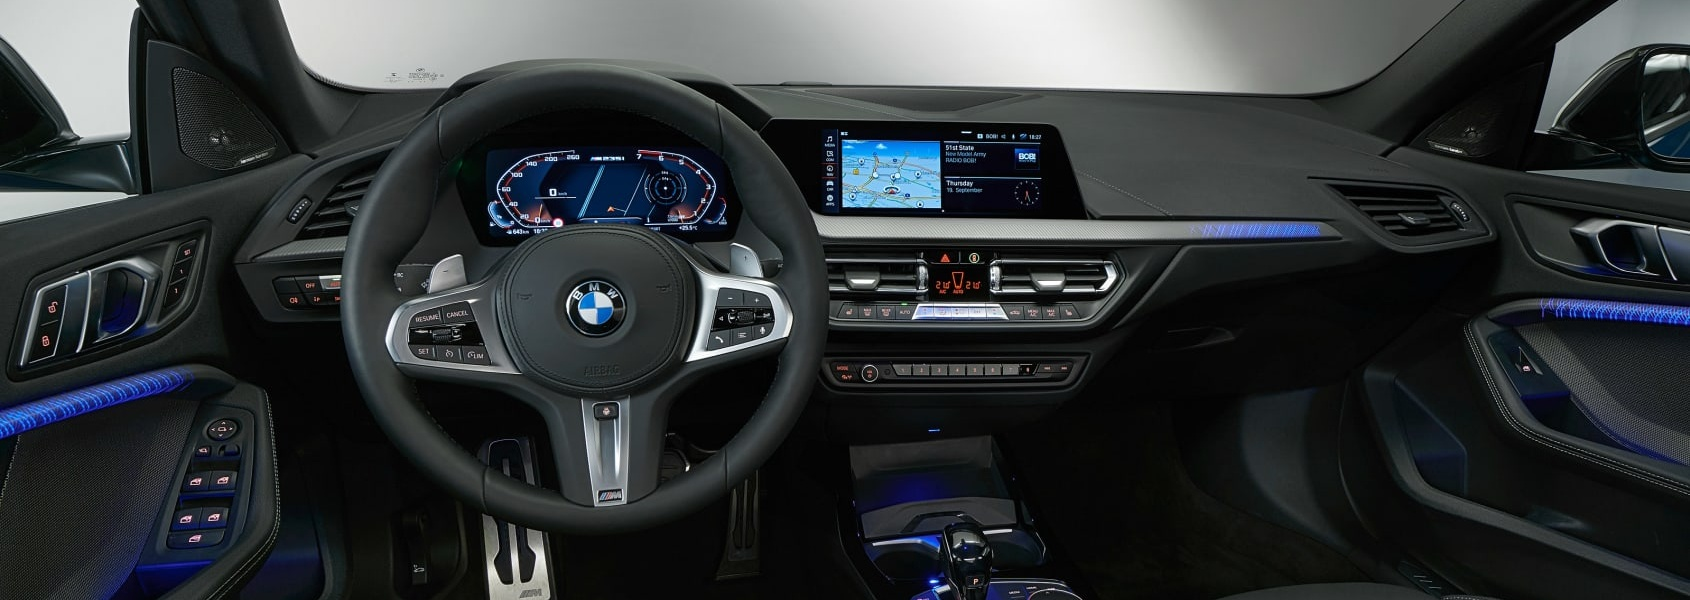 2020-bmw-2-series-gran-coupe-10.jpg